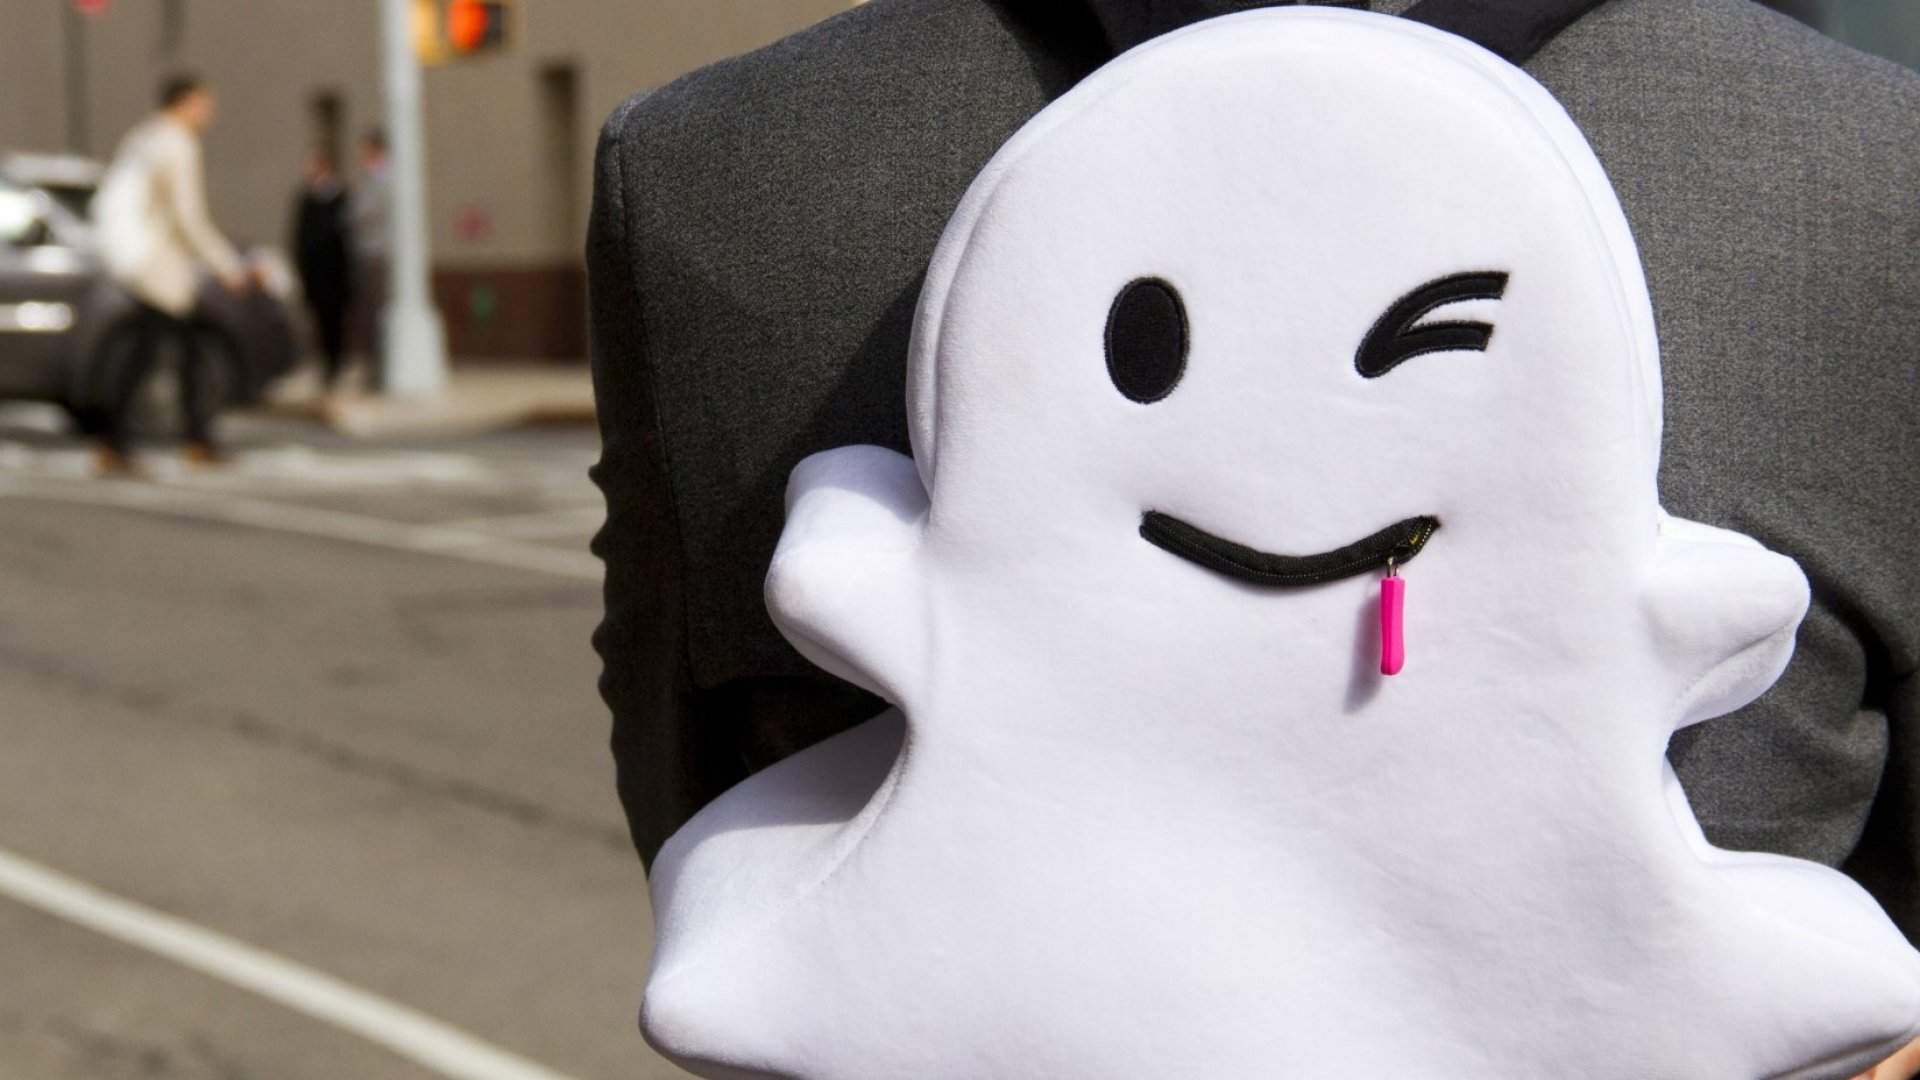 Snapchat Now Has 10 Million More Daily Users Than Twitter